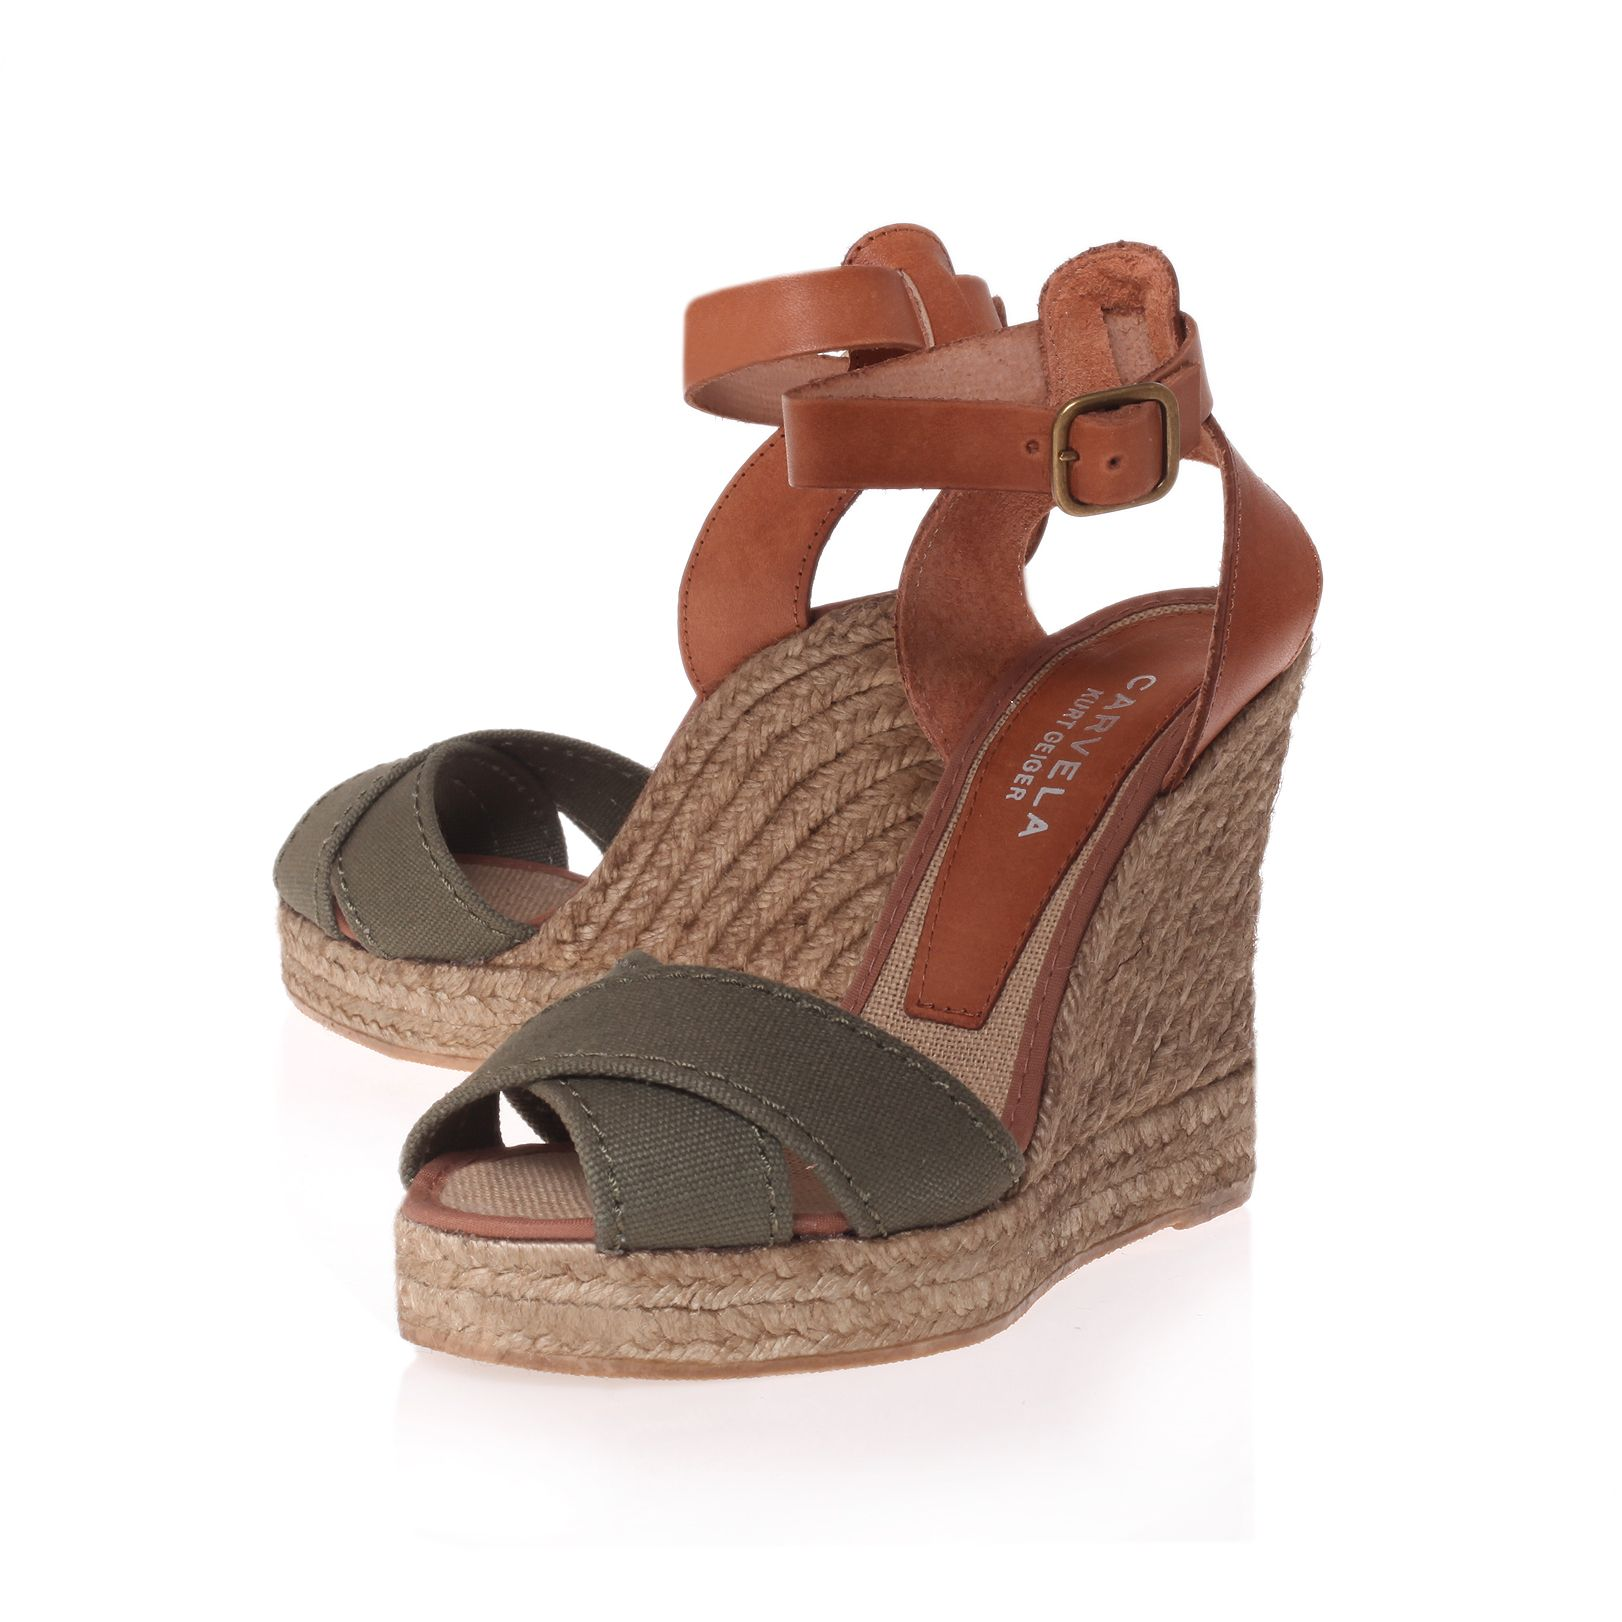 Kilo espadrille shoes